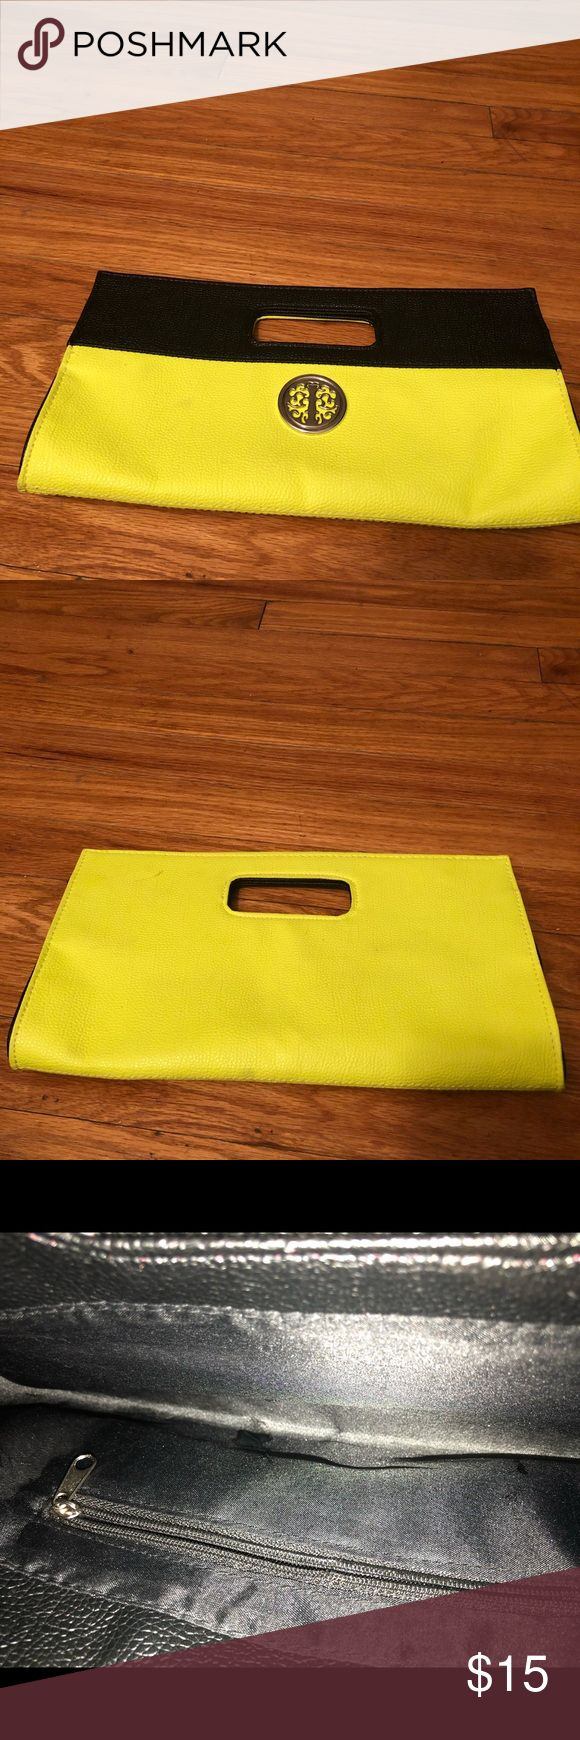 Neon yellow and black clutch Neon yellow and black clutch. Has a small blemish on the back in the top left hand corner. Bags Clutches & Wristlets